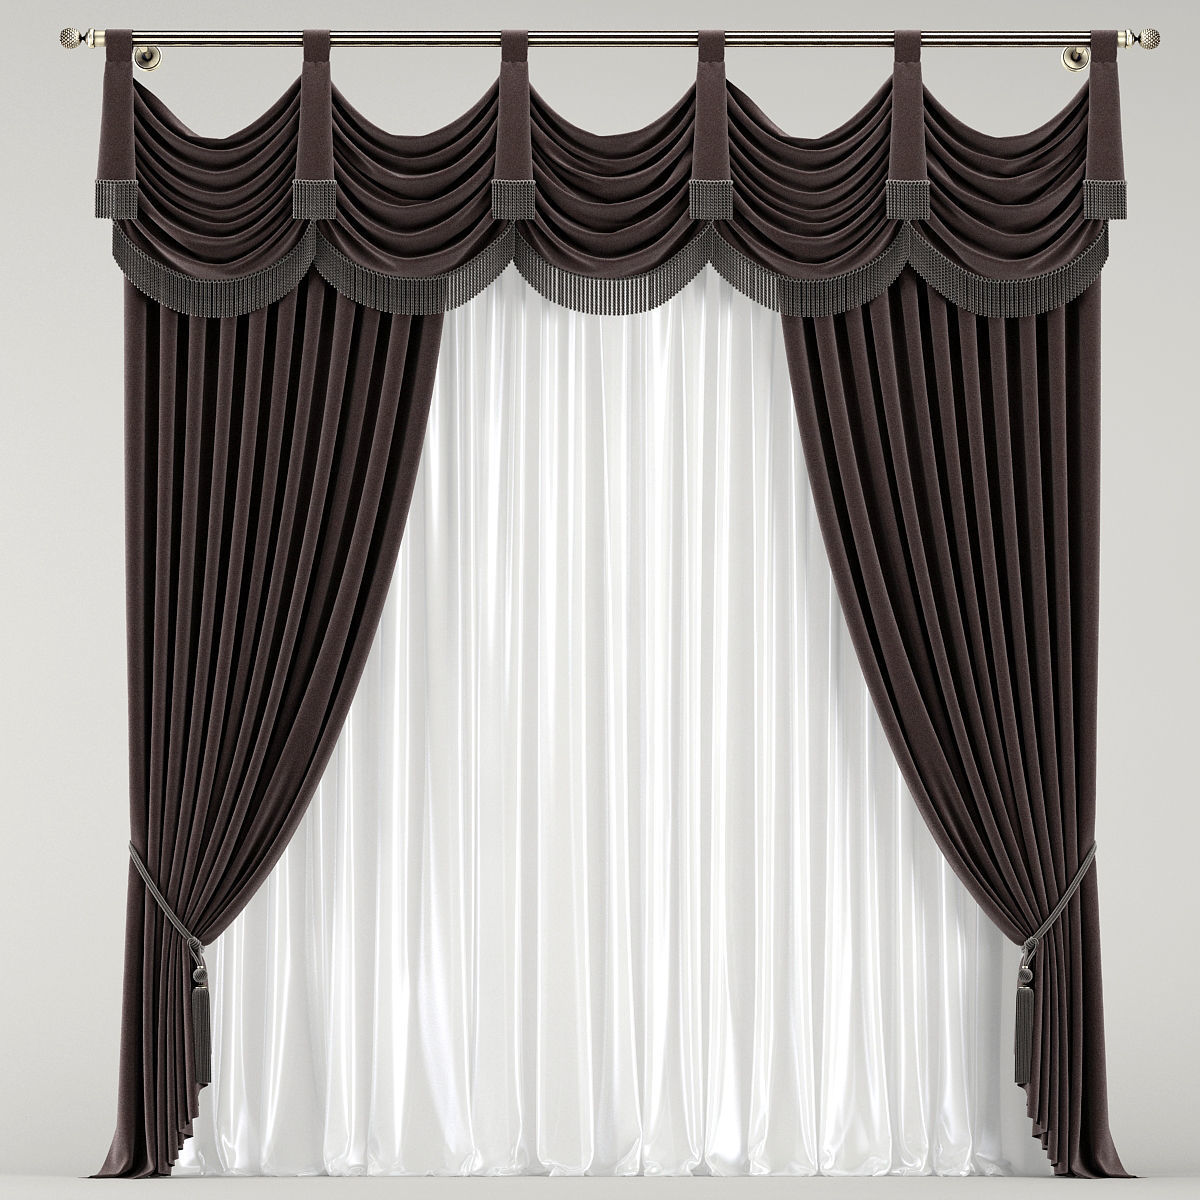 Choose the curtain with the best finish